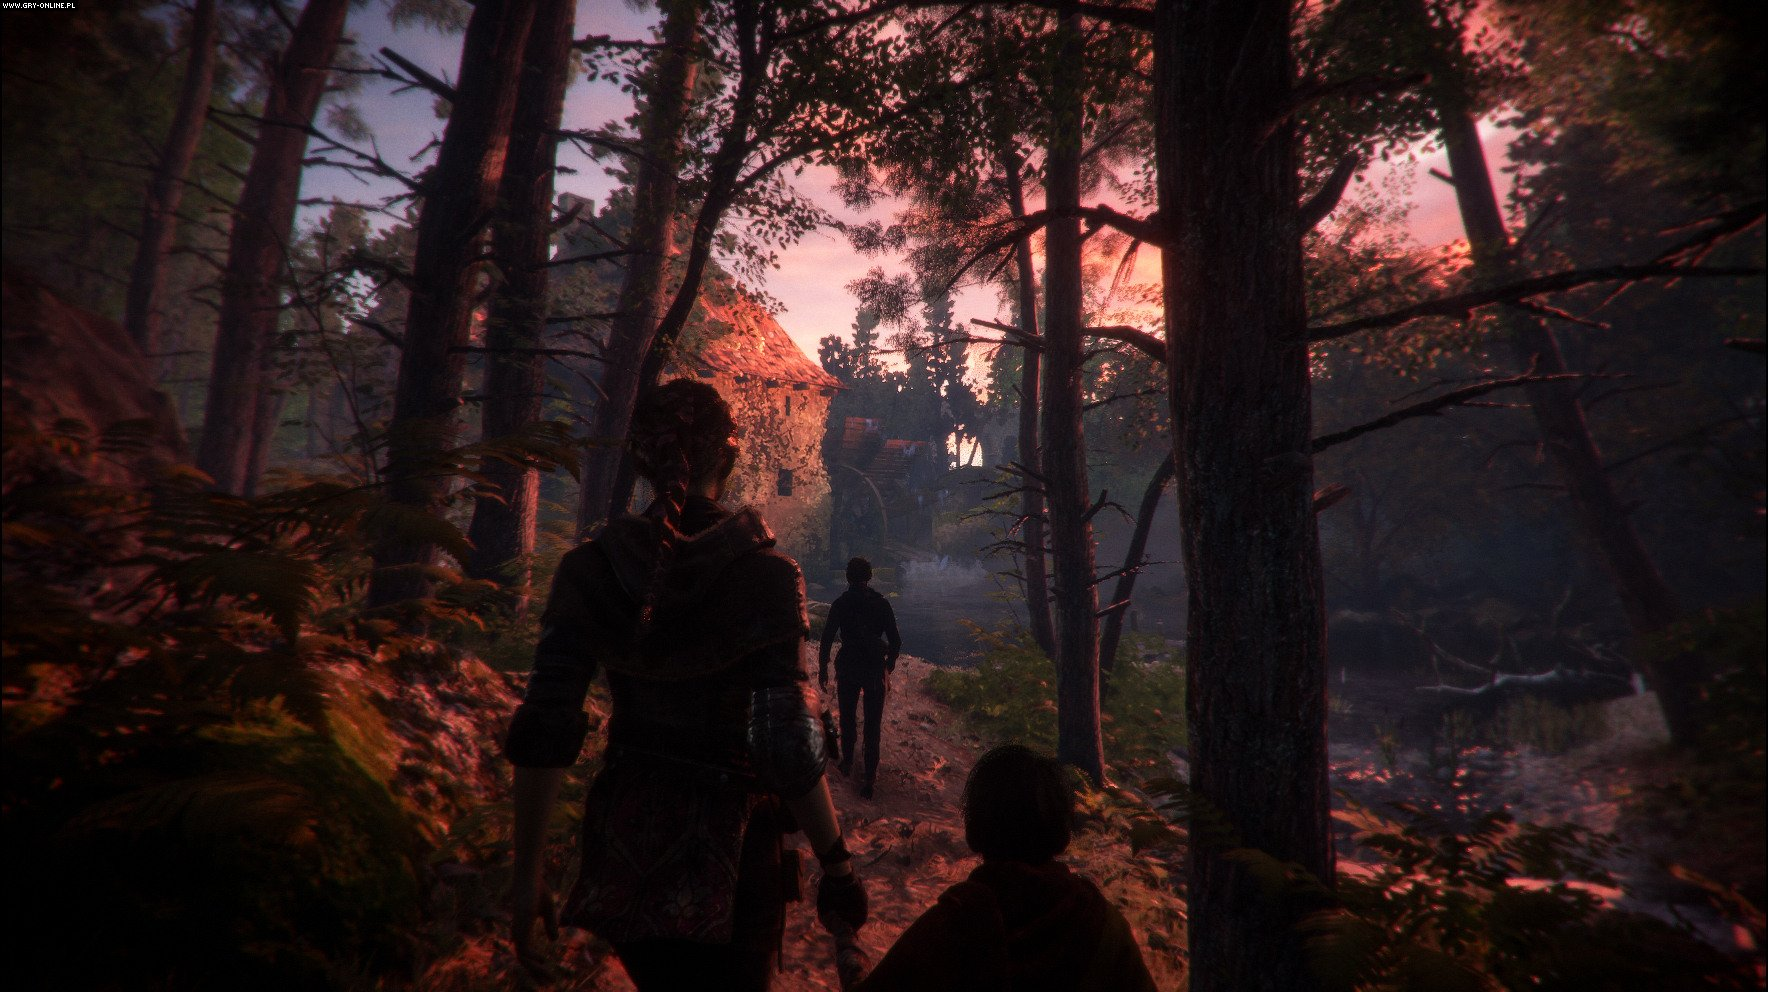 A Plague Tale: Innocence PC, PS4, XONE Games Image 5/30, Asobo Studio, Focus Home Interactive